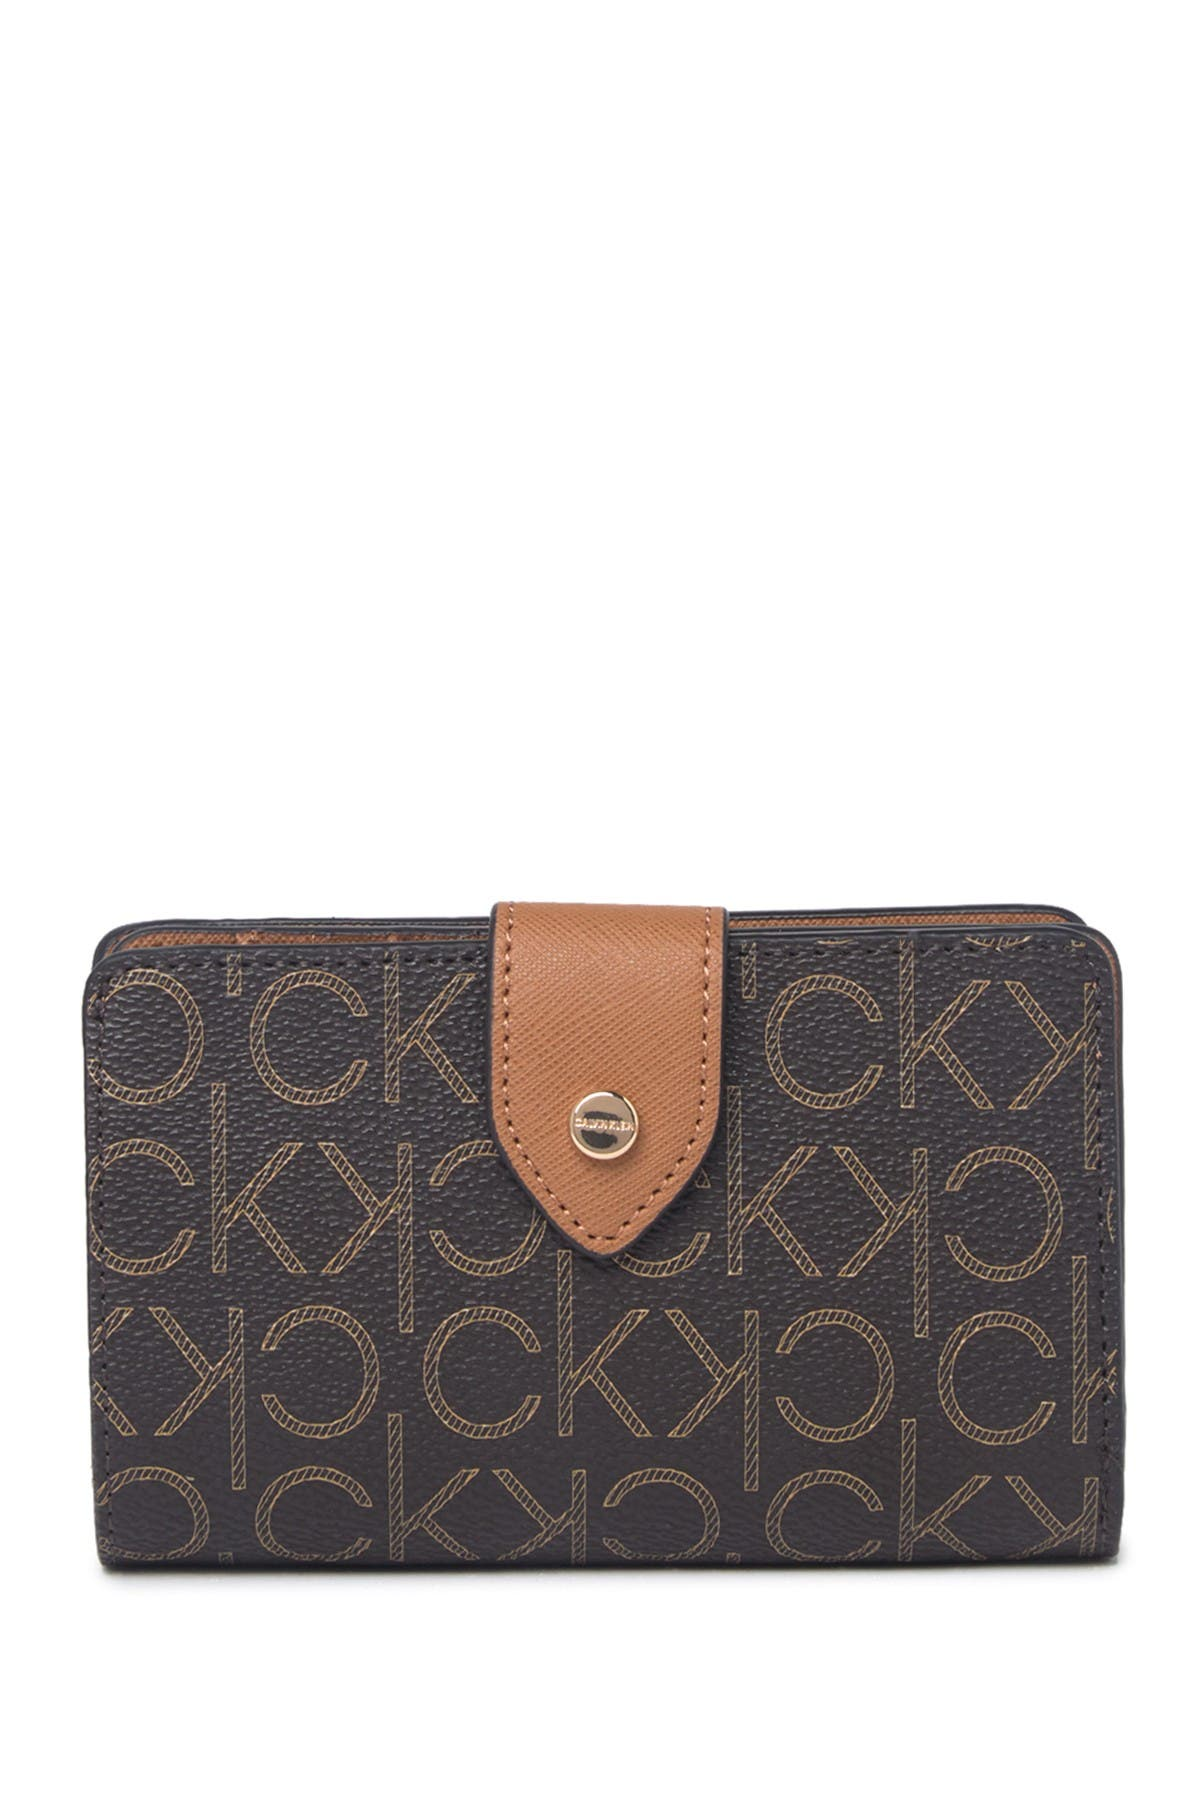 Image of Calvin Klein Signature Embossed Small Wallet